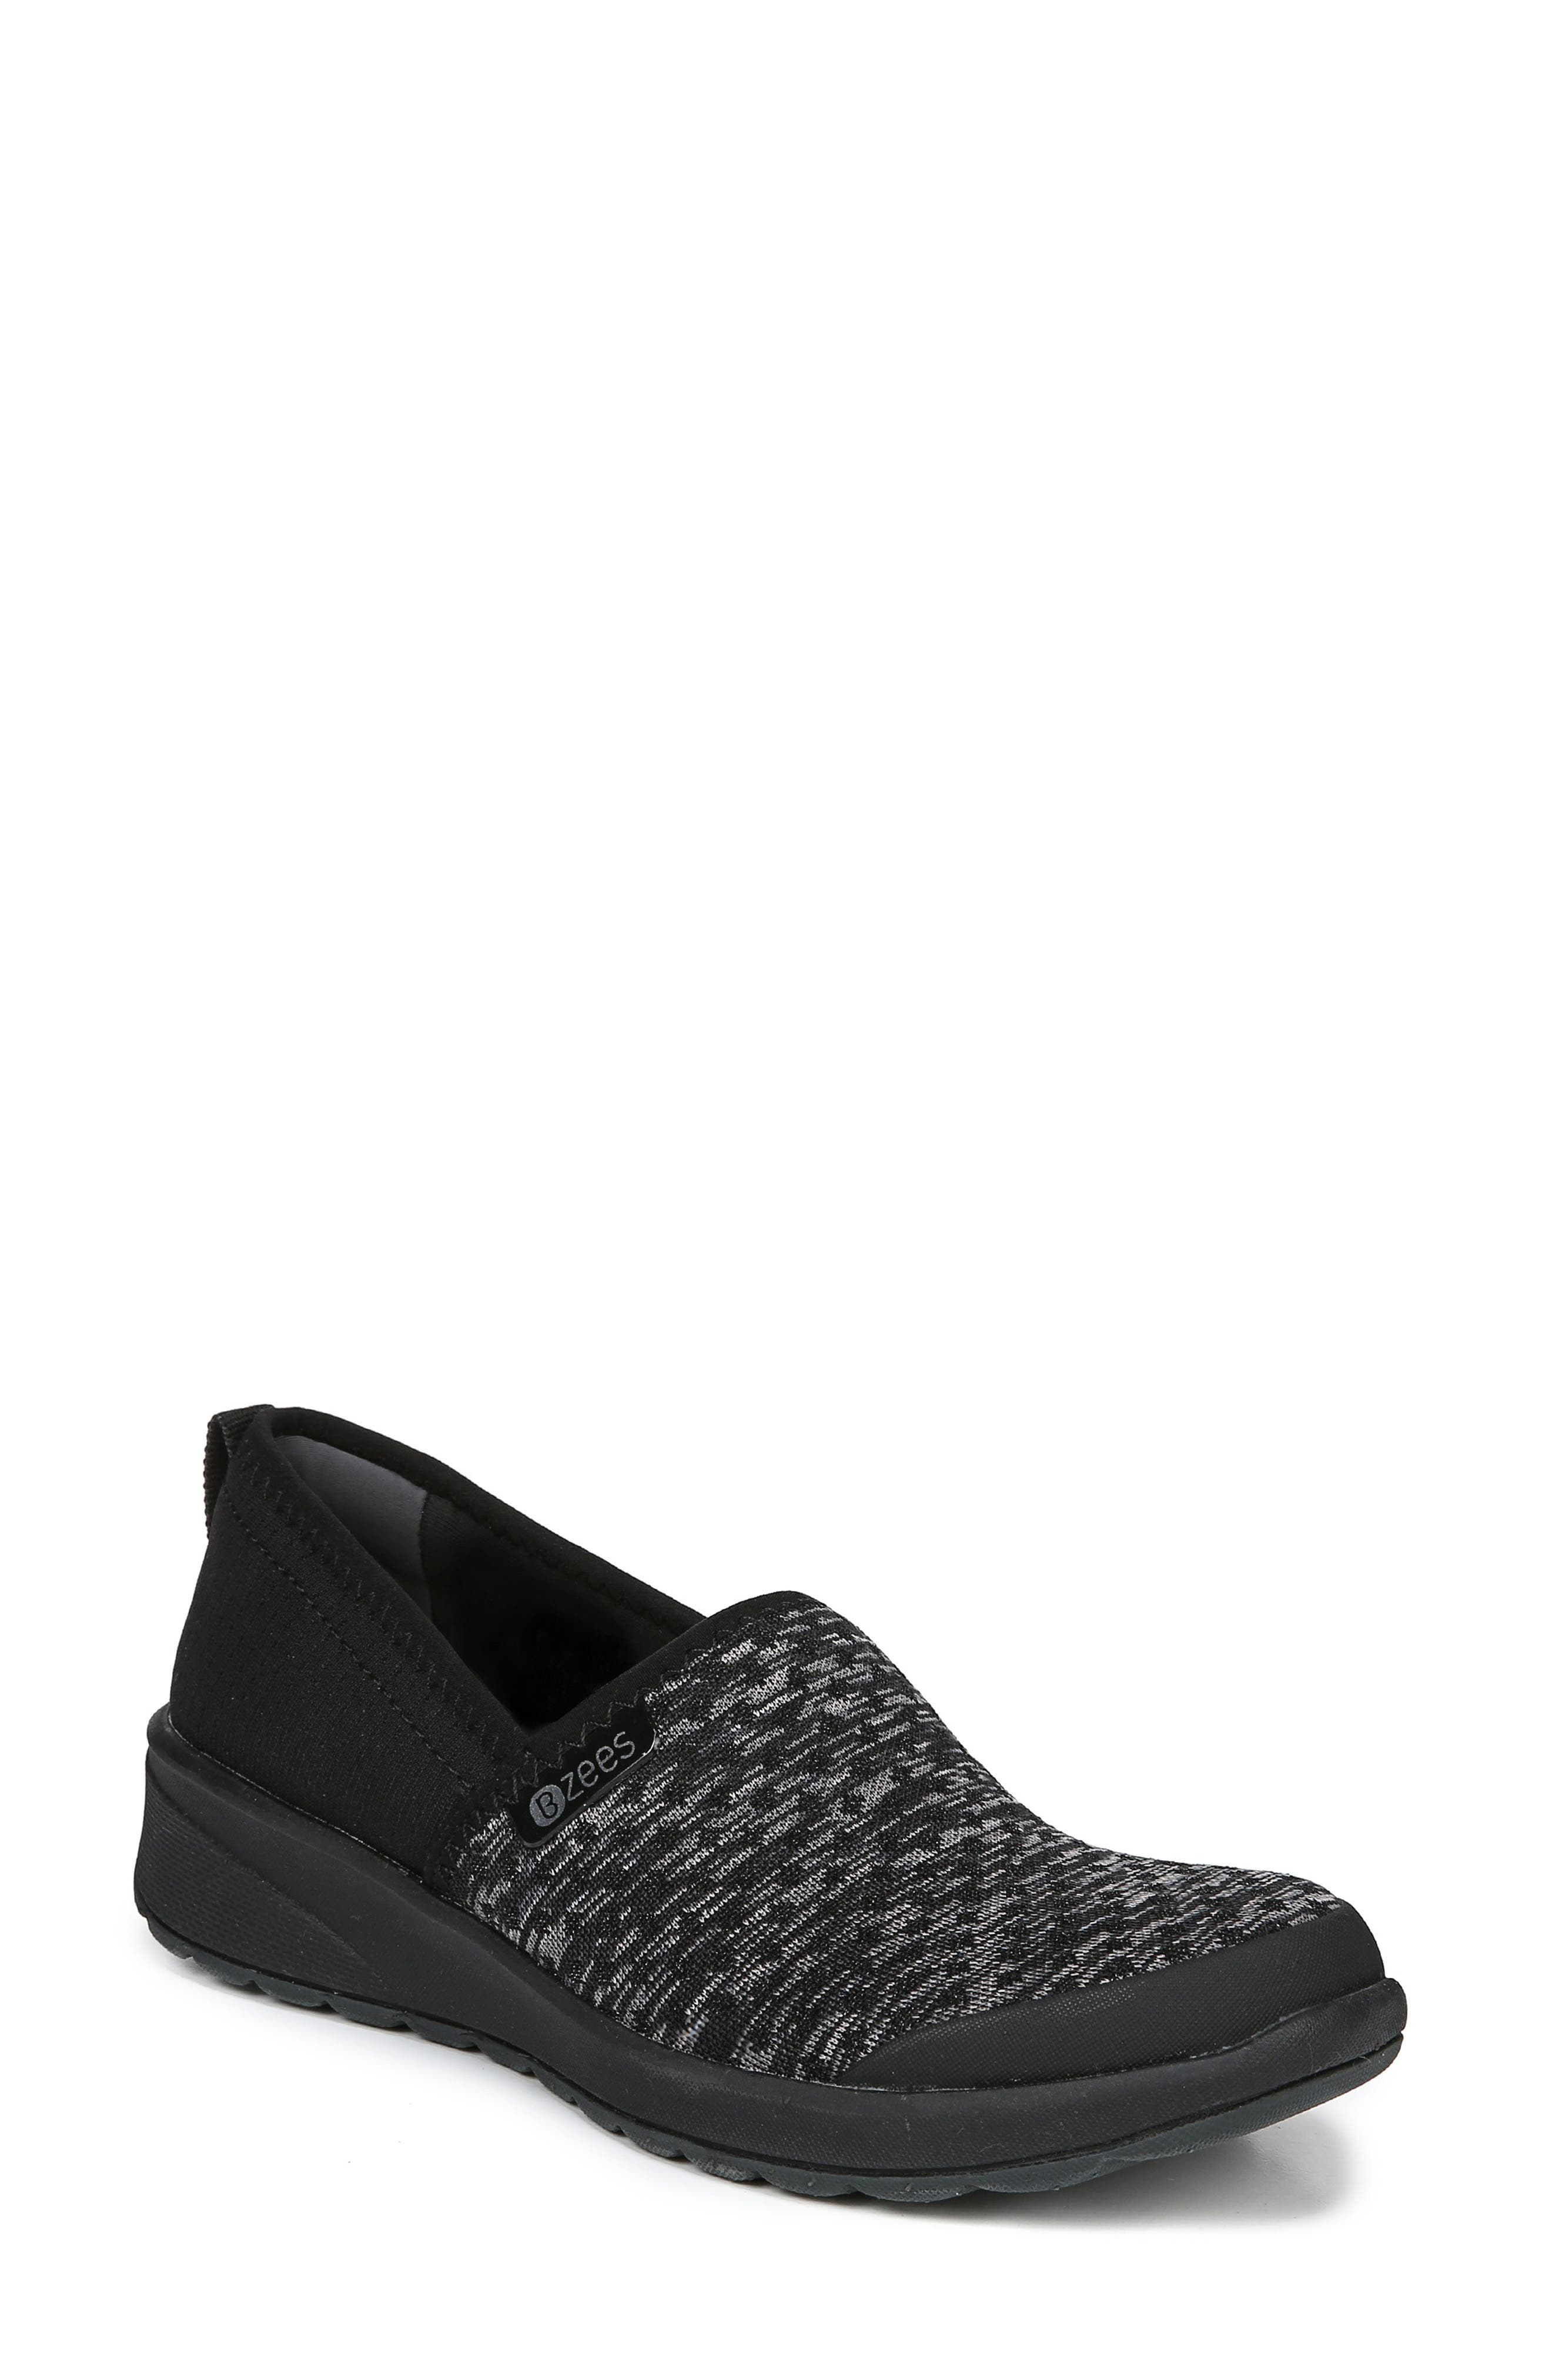 Glee Slip-On Sneaker,                         Main,                         color, BLACK DOT HEATHER FABRIC